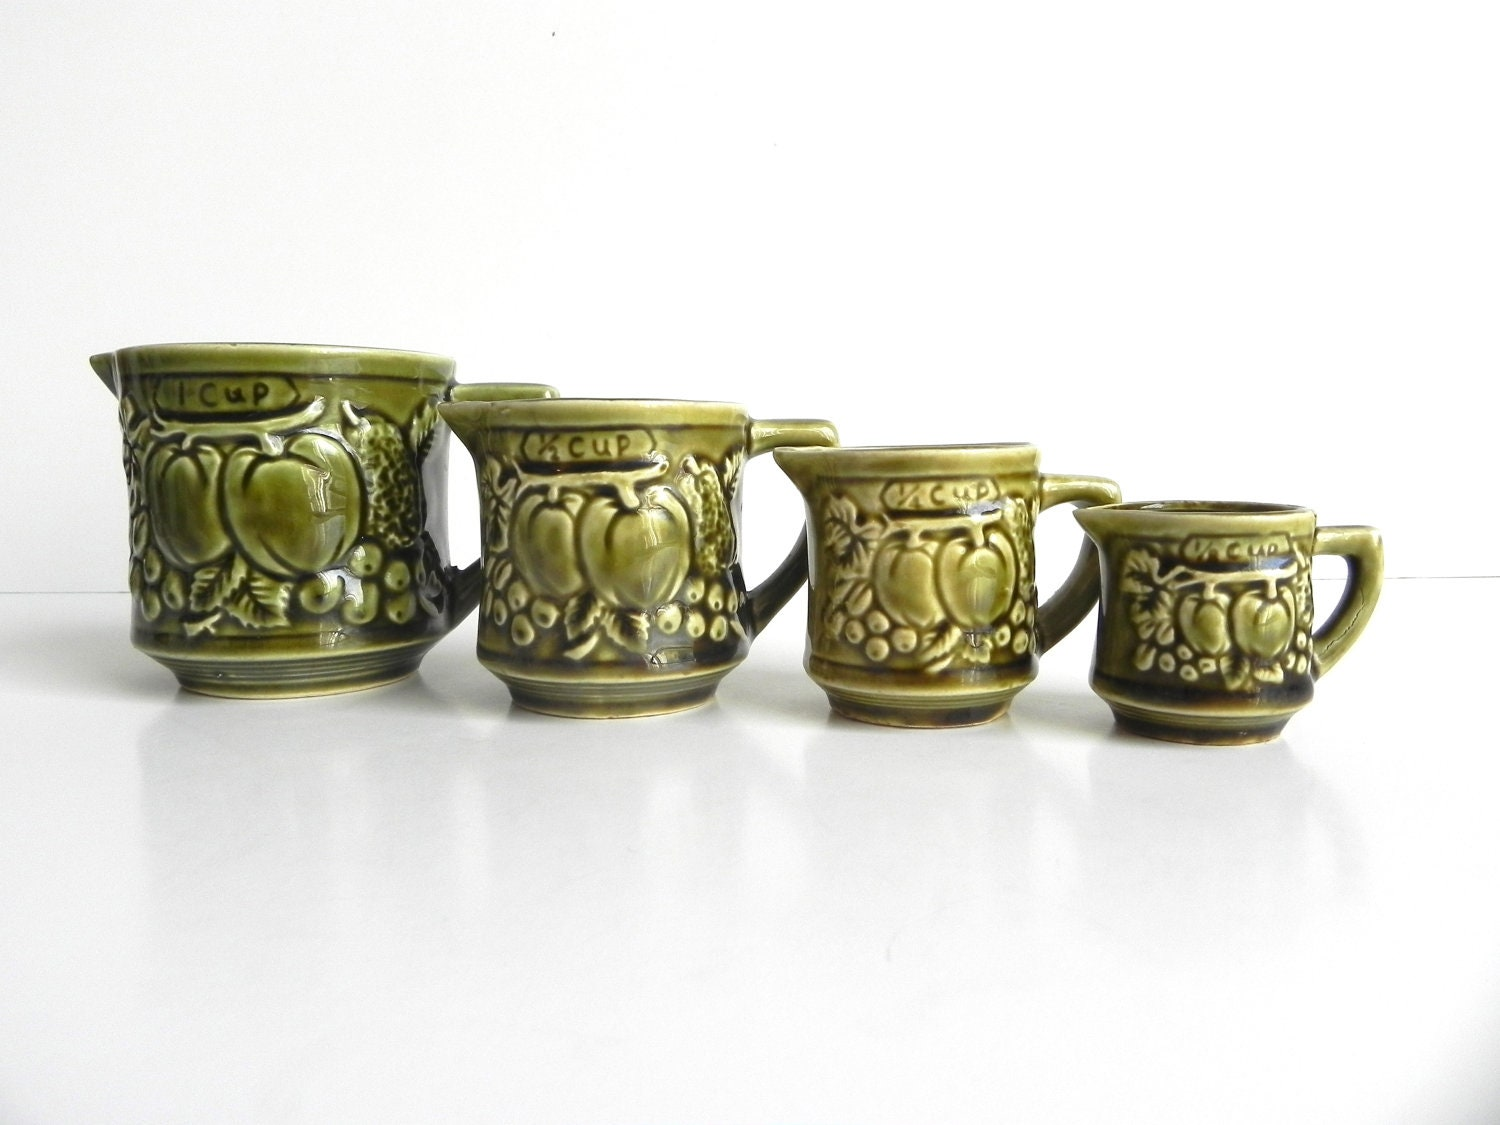 Vintage Ceramic Measuring Cup Set Olive Green Made In